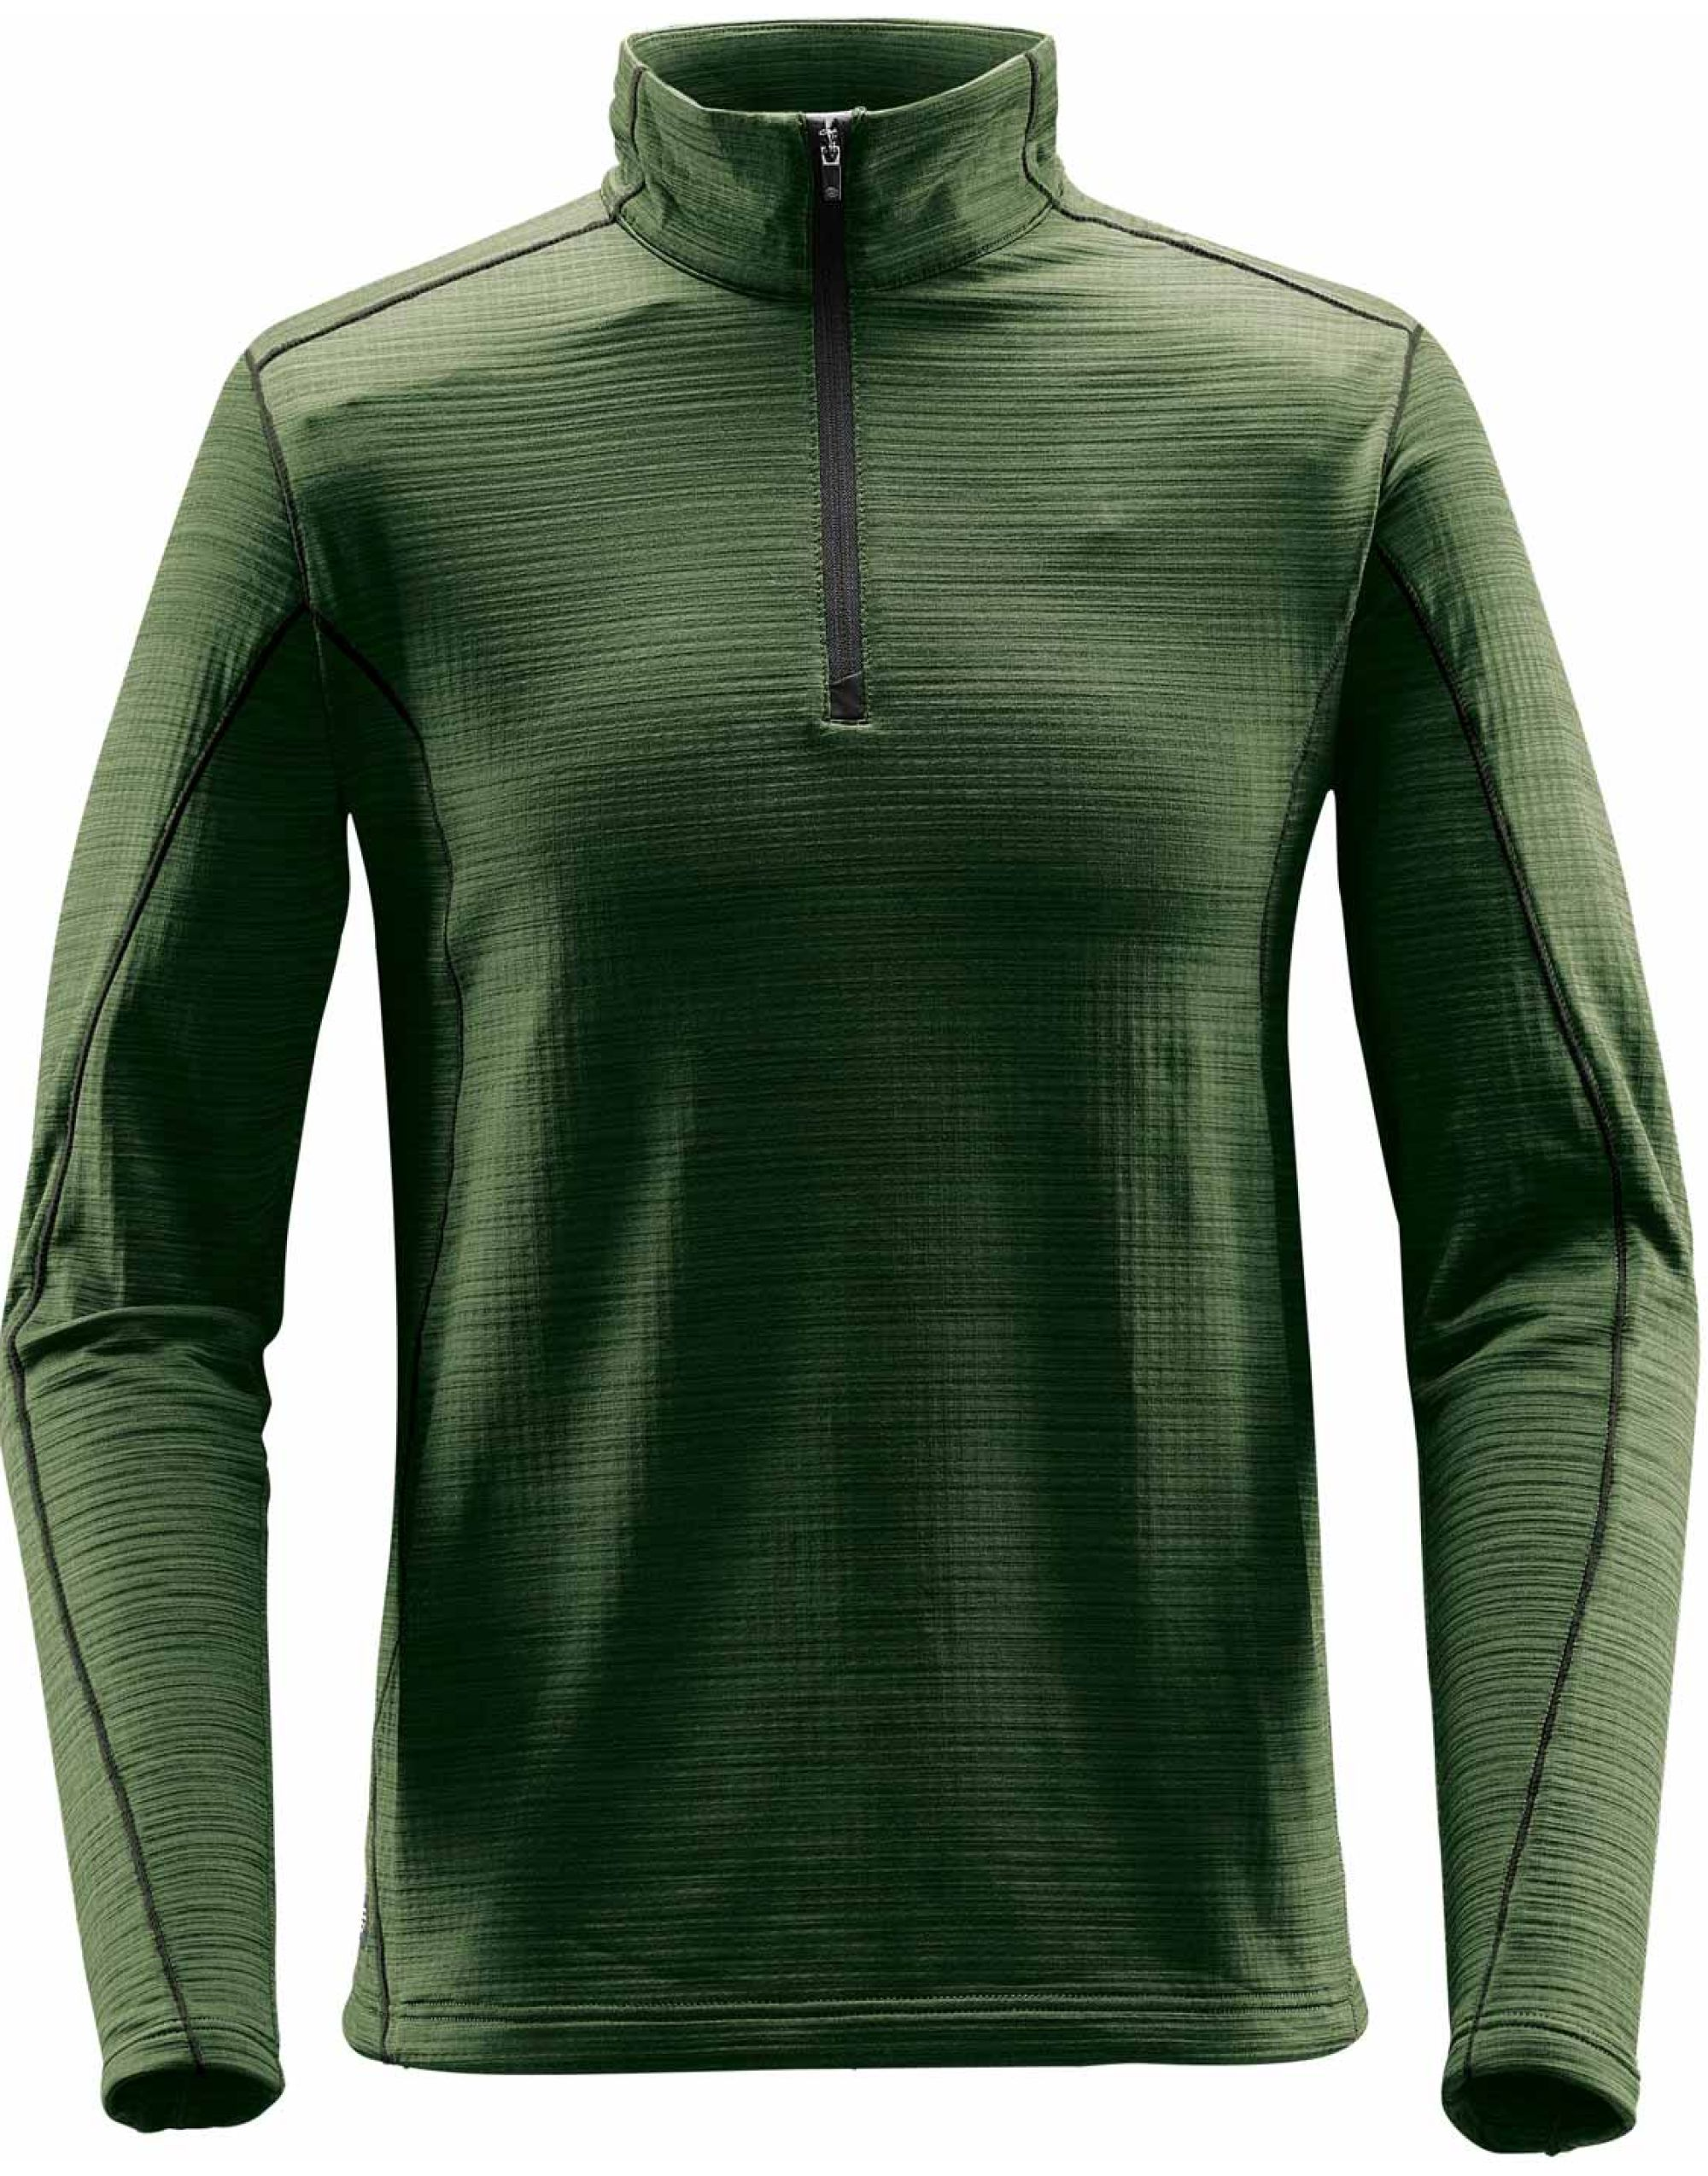 Stormtech Men's Base Thermal 1/4 Zip